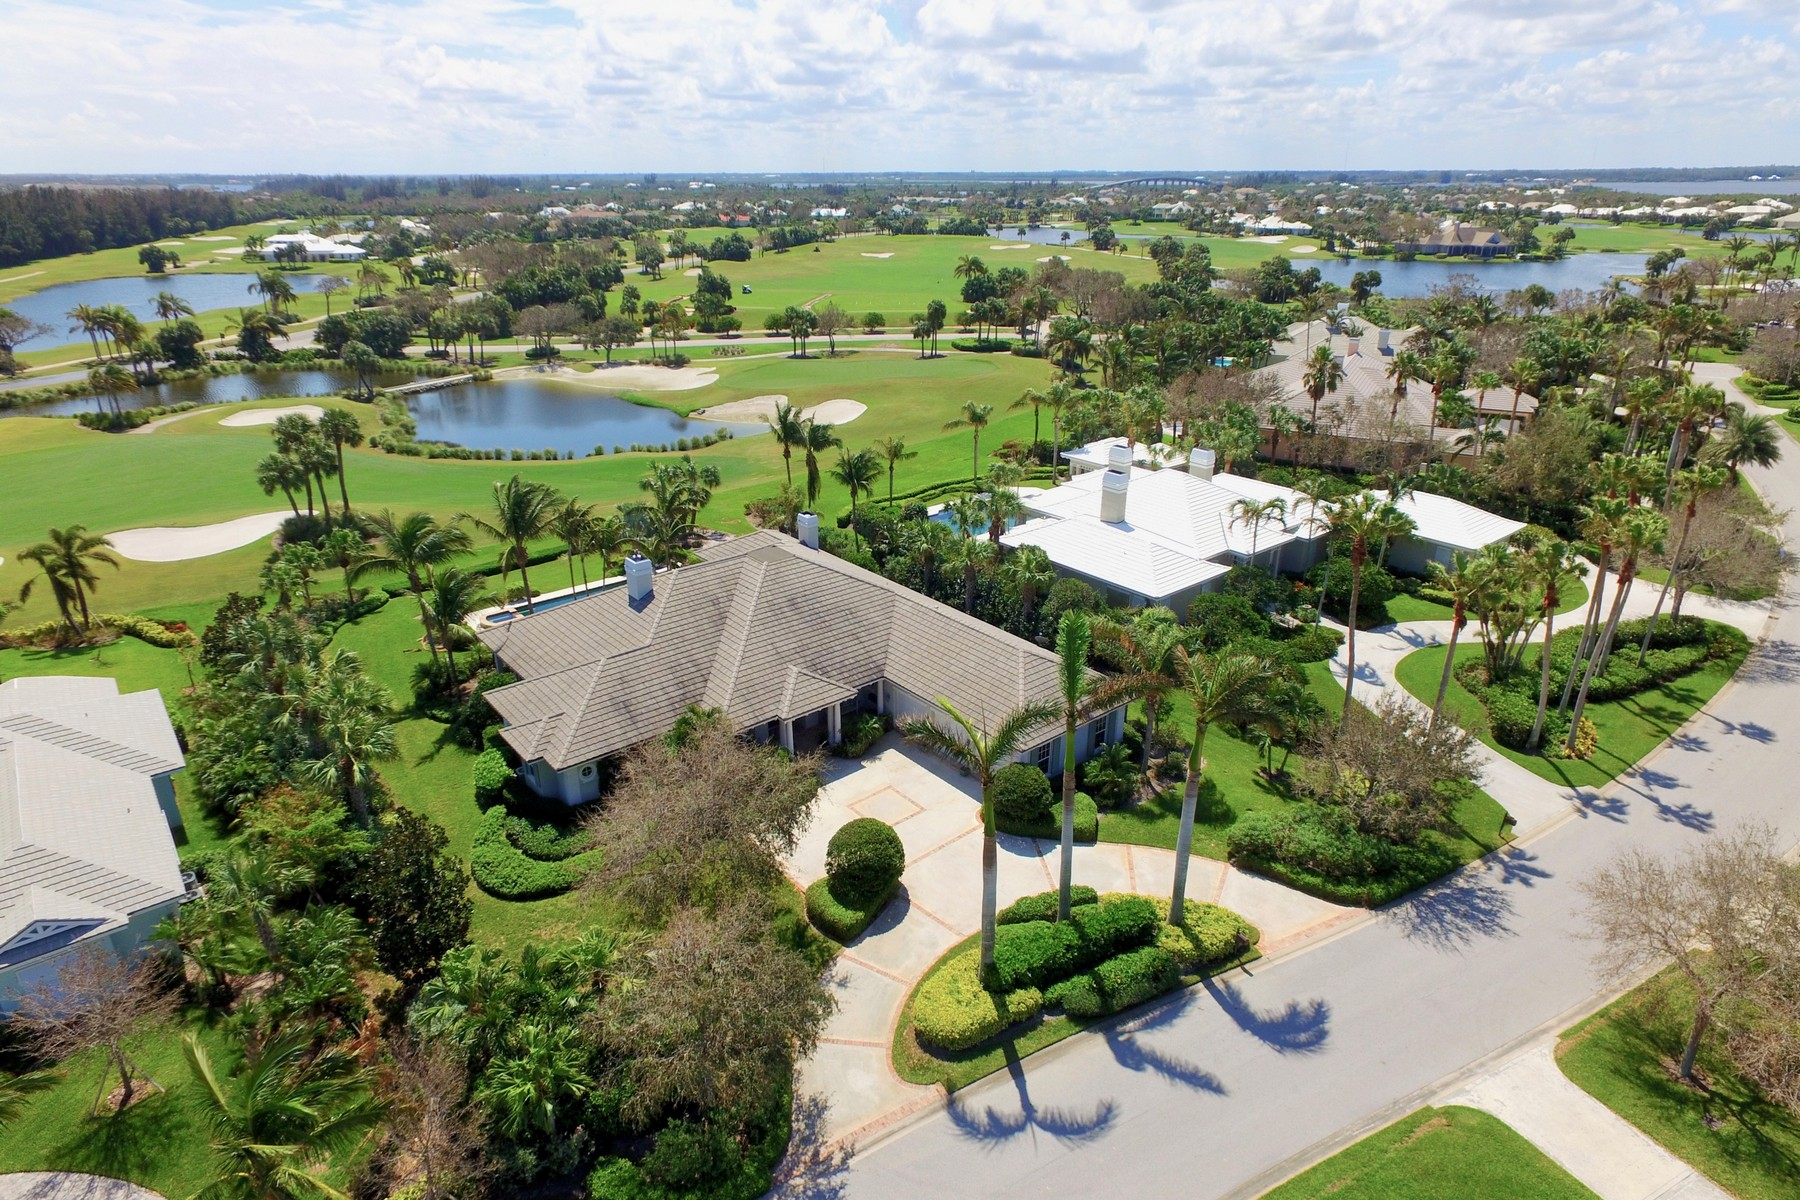 Casa Unifamiliar por un Venta en Lakefront Home with Endless Golf Views 130 Seaspray Lane, Vero Beach, Florida, 32963 Estados Unidos